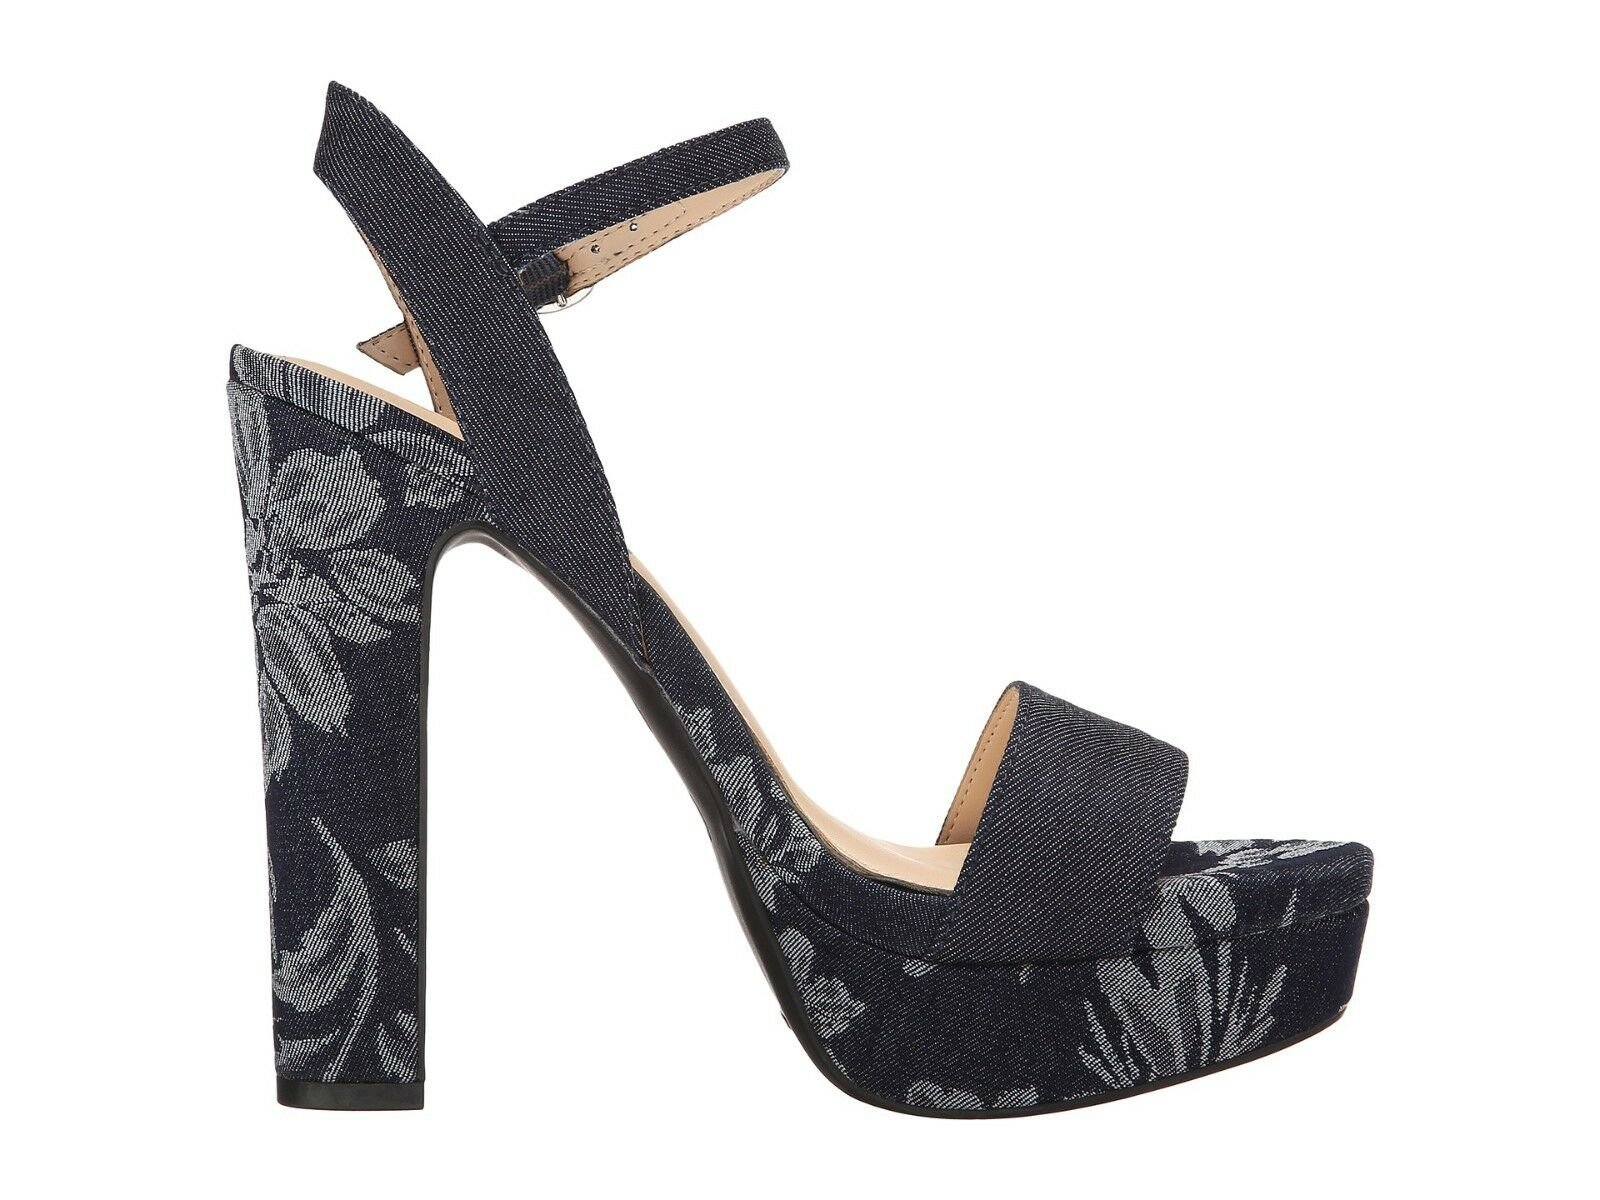 Jessica Simpson Blaney Größe Platform High Heel Sandals, Größe Blaney 8.5 Indigo JS-Blaney 8dc55b